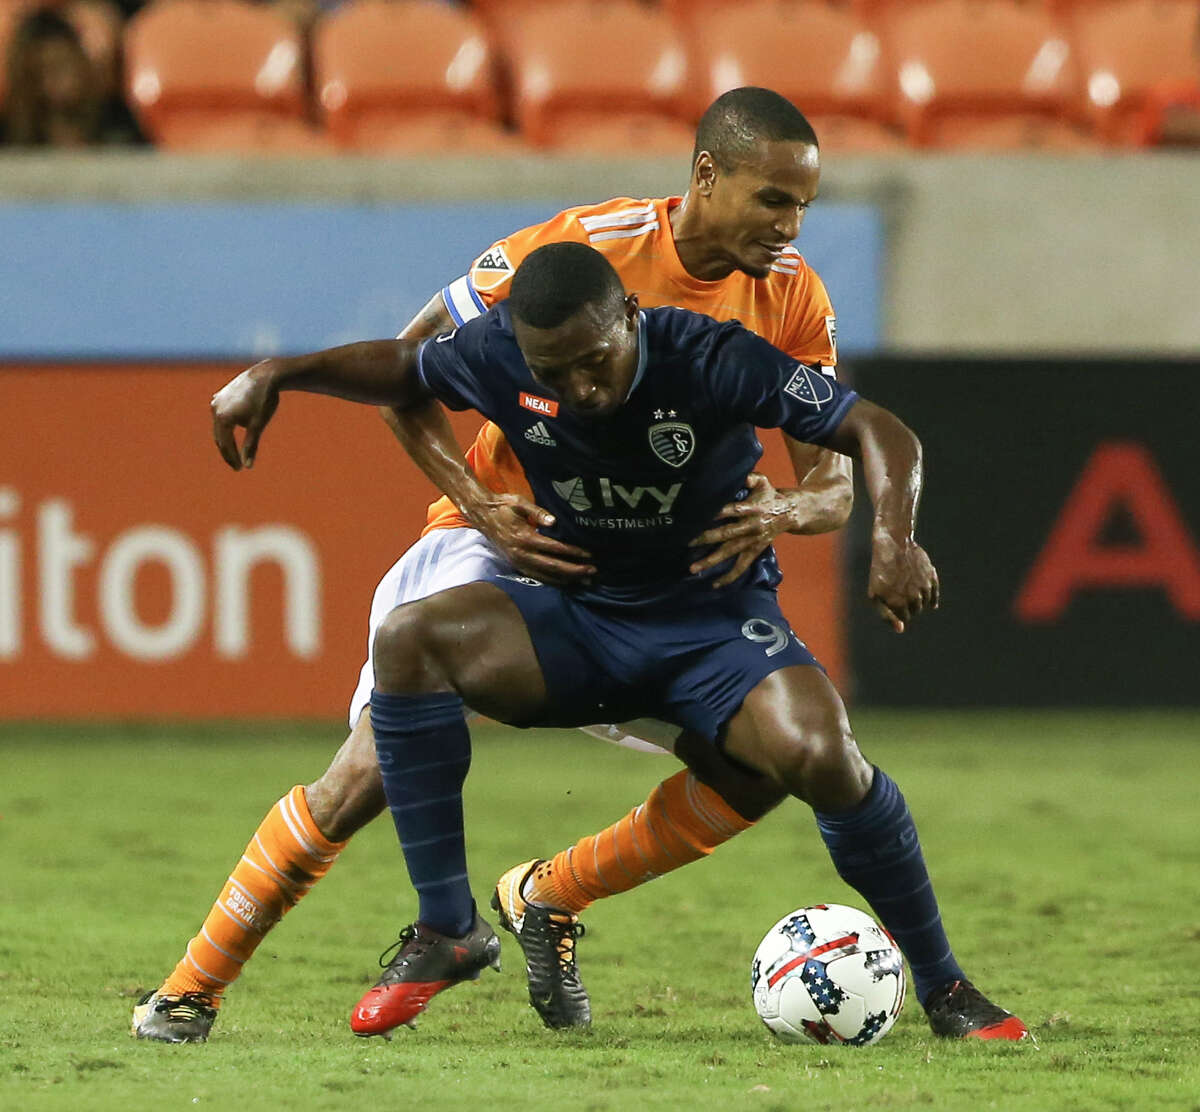 Houston Dynamo midfielder Ricardo Clark (13) defensing Sporting Kansas City forward Jimmy Medranda (94) during the second half of the MLS game at BBVA Compass Stadium Wednesday, Oct. 11, 2017, in Houston. Houston Dynamo defeated Sporting Kansas City 2-1. ( Yi-Chin Lee / Houston Chronicle )